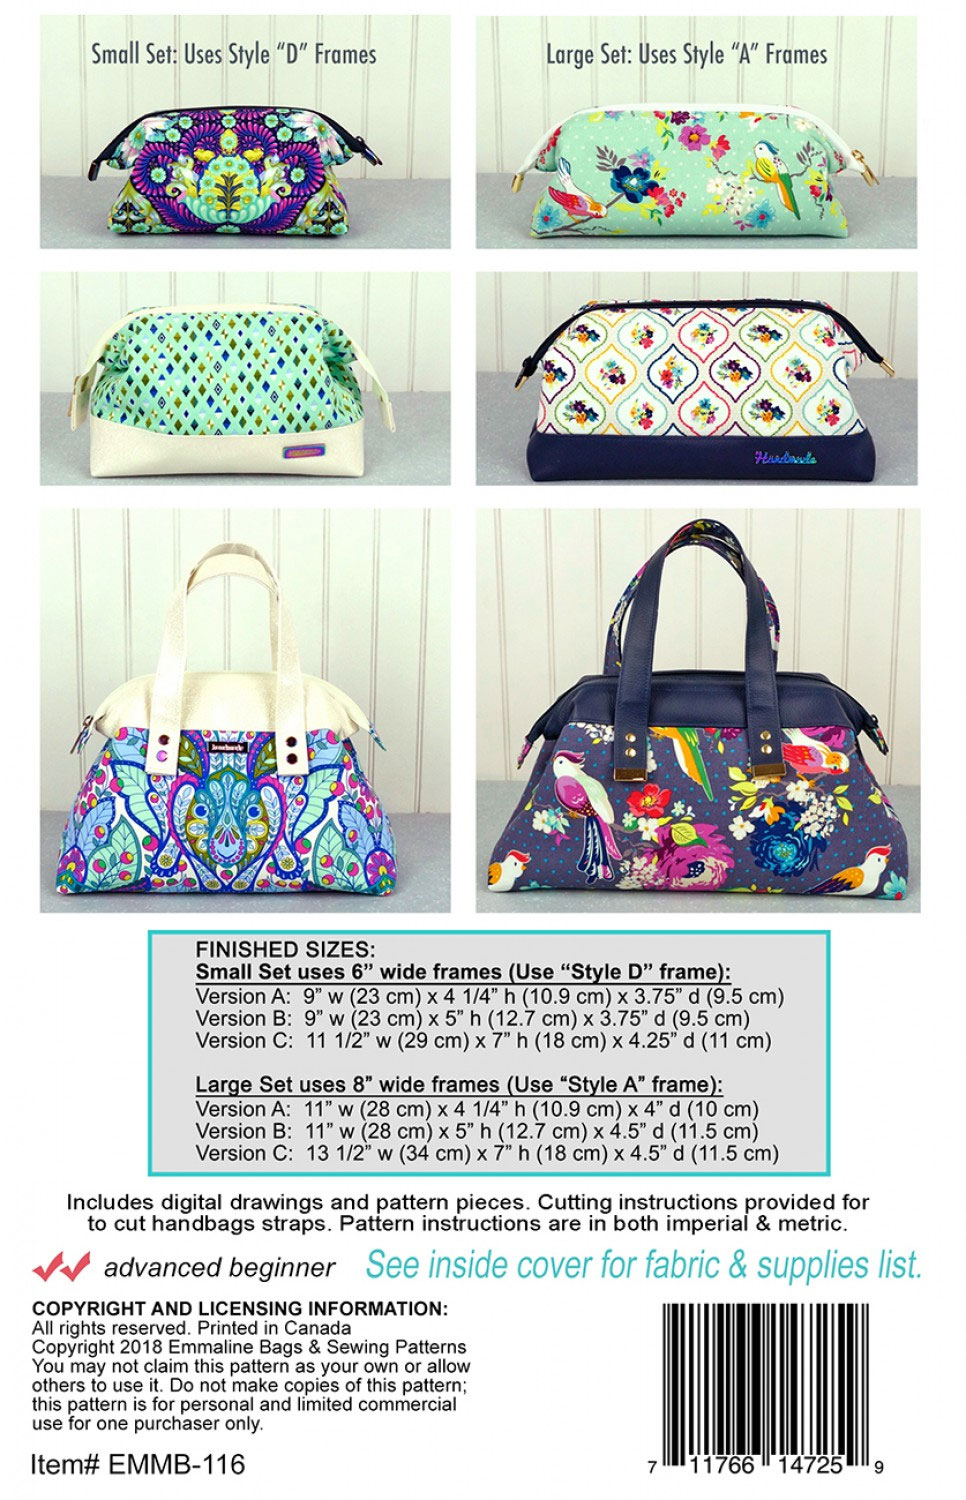 trifecta-zip-bags-sewing-pattern-from-Emmaline-Bags-back